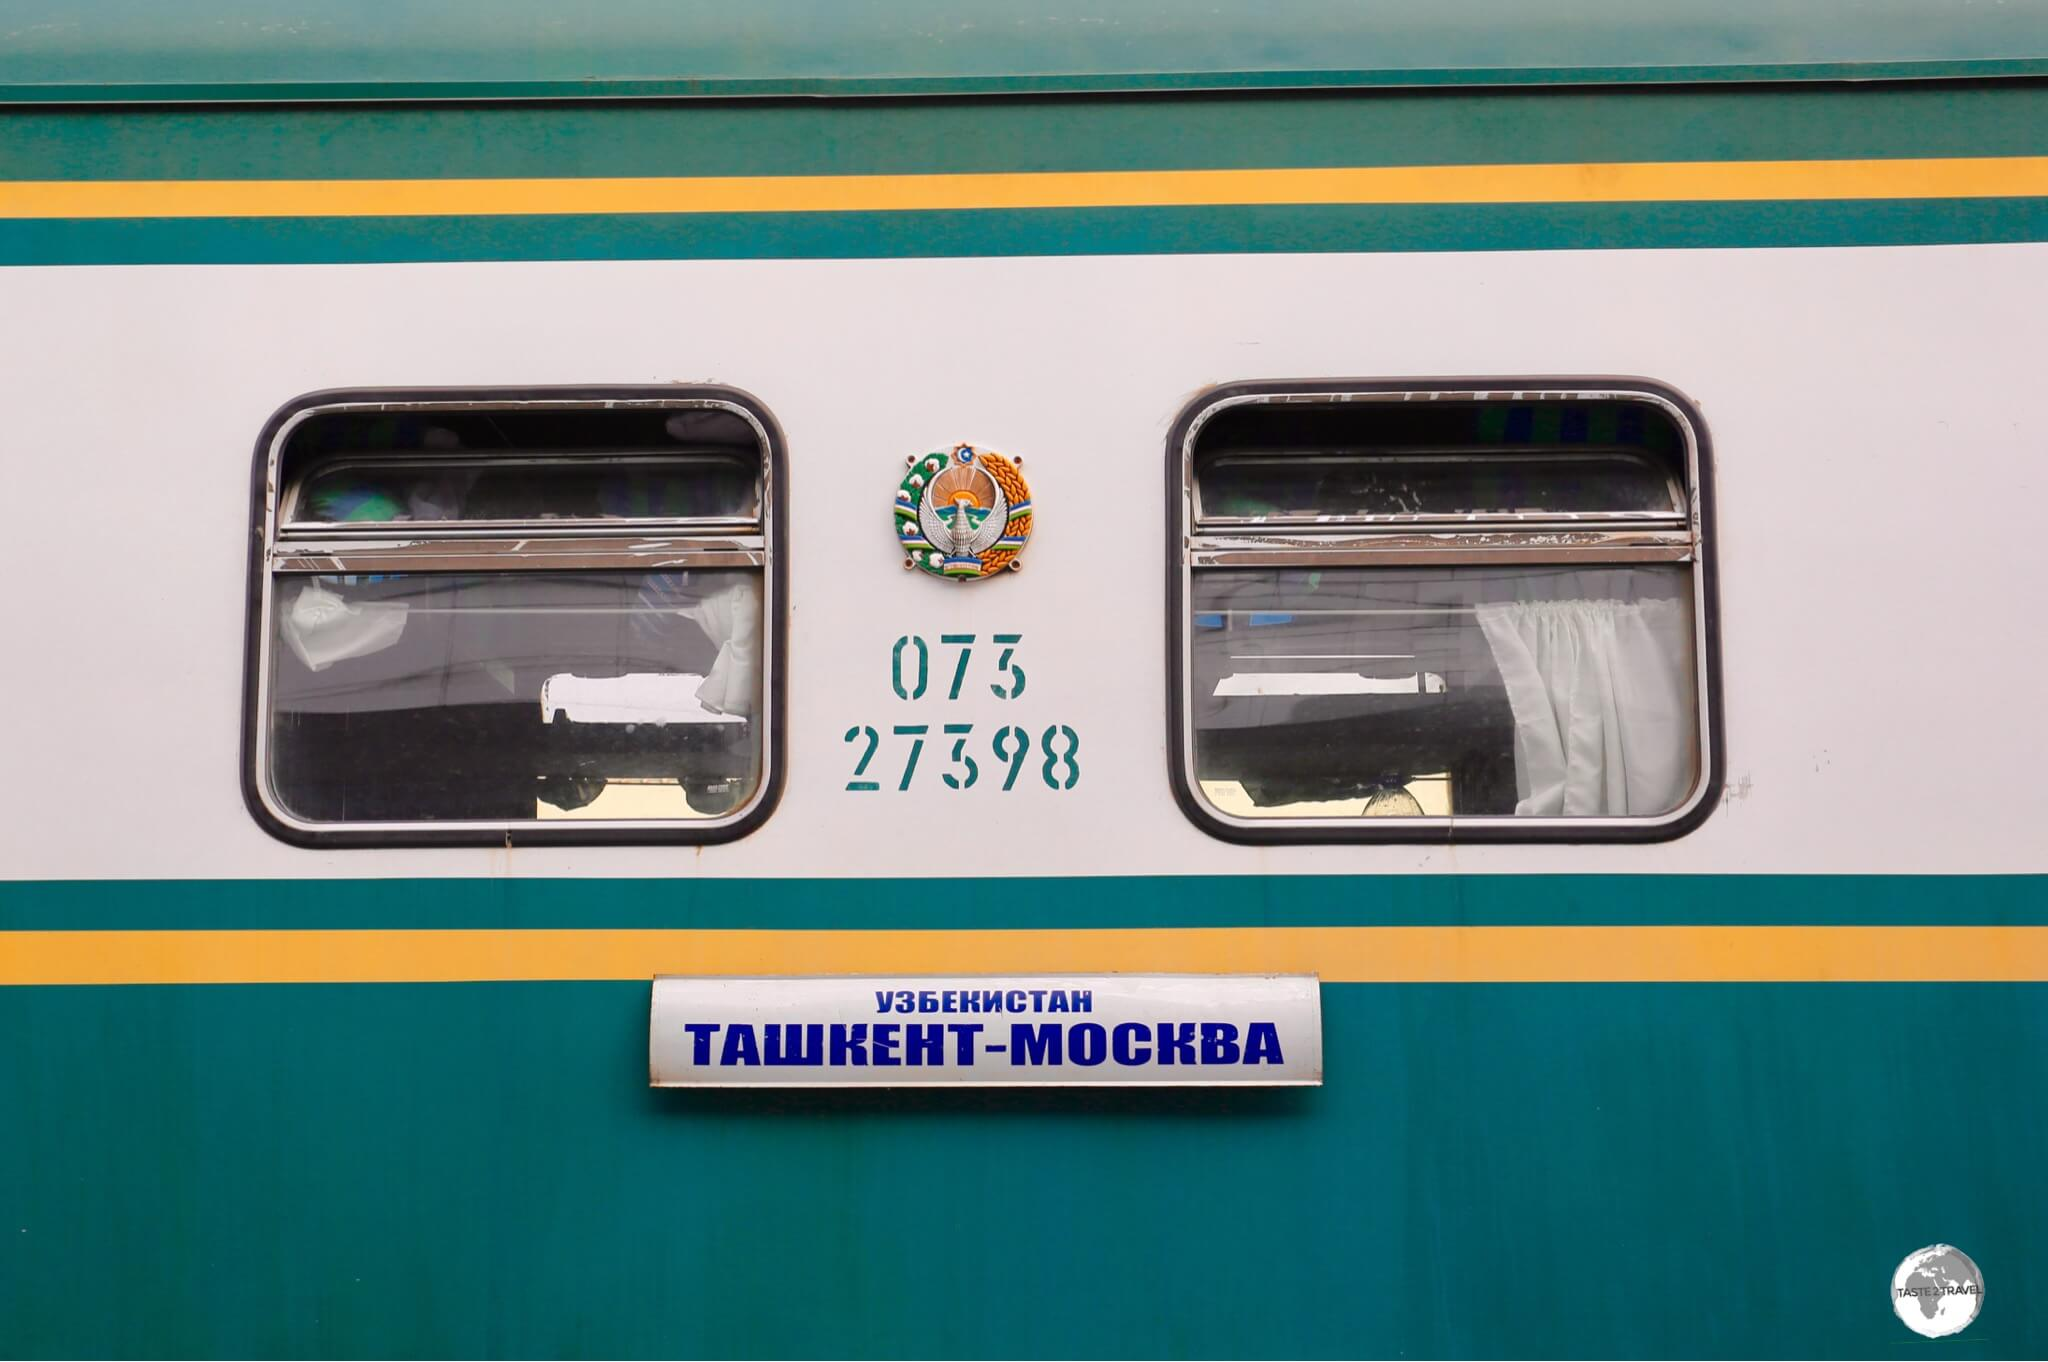 The Tashkent to Moscow train at Tashkent station.